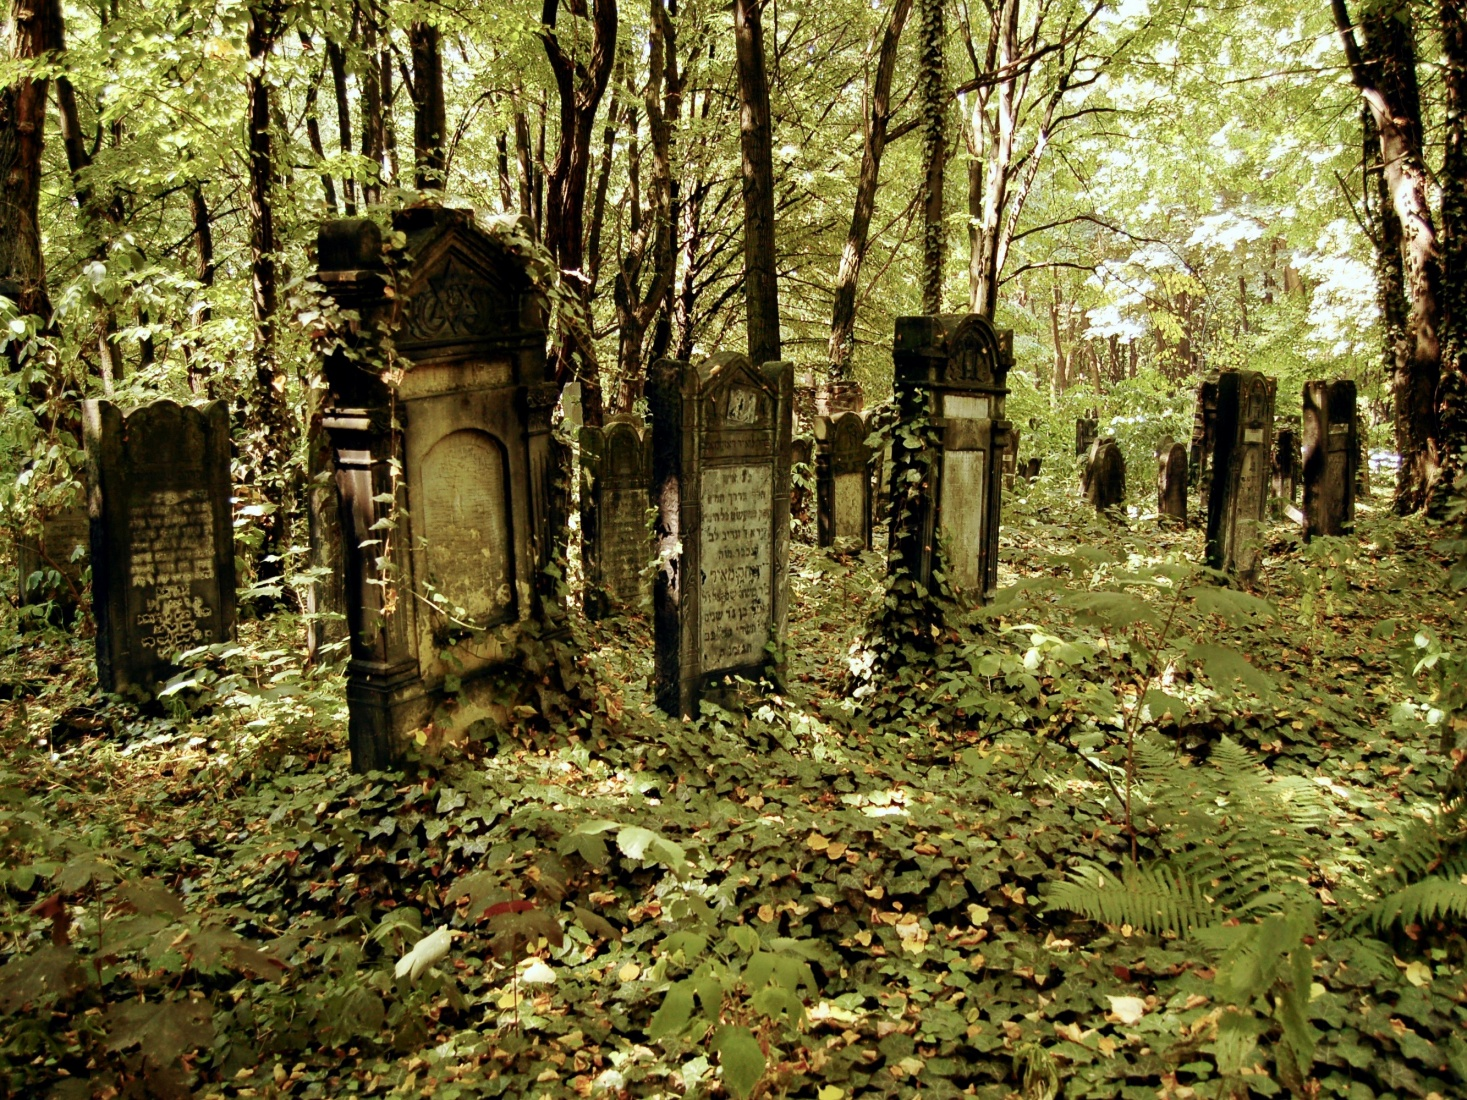 The enormous Jewish cemetery in Łódź, Poland, with many rows of untended graves left after World War II.